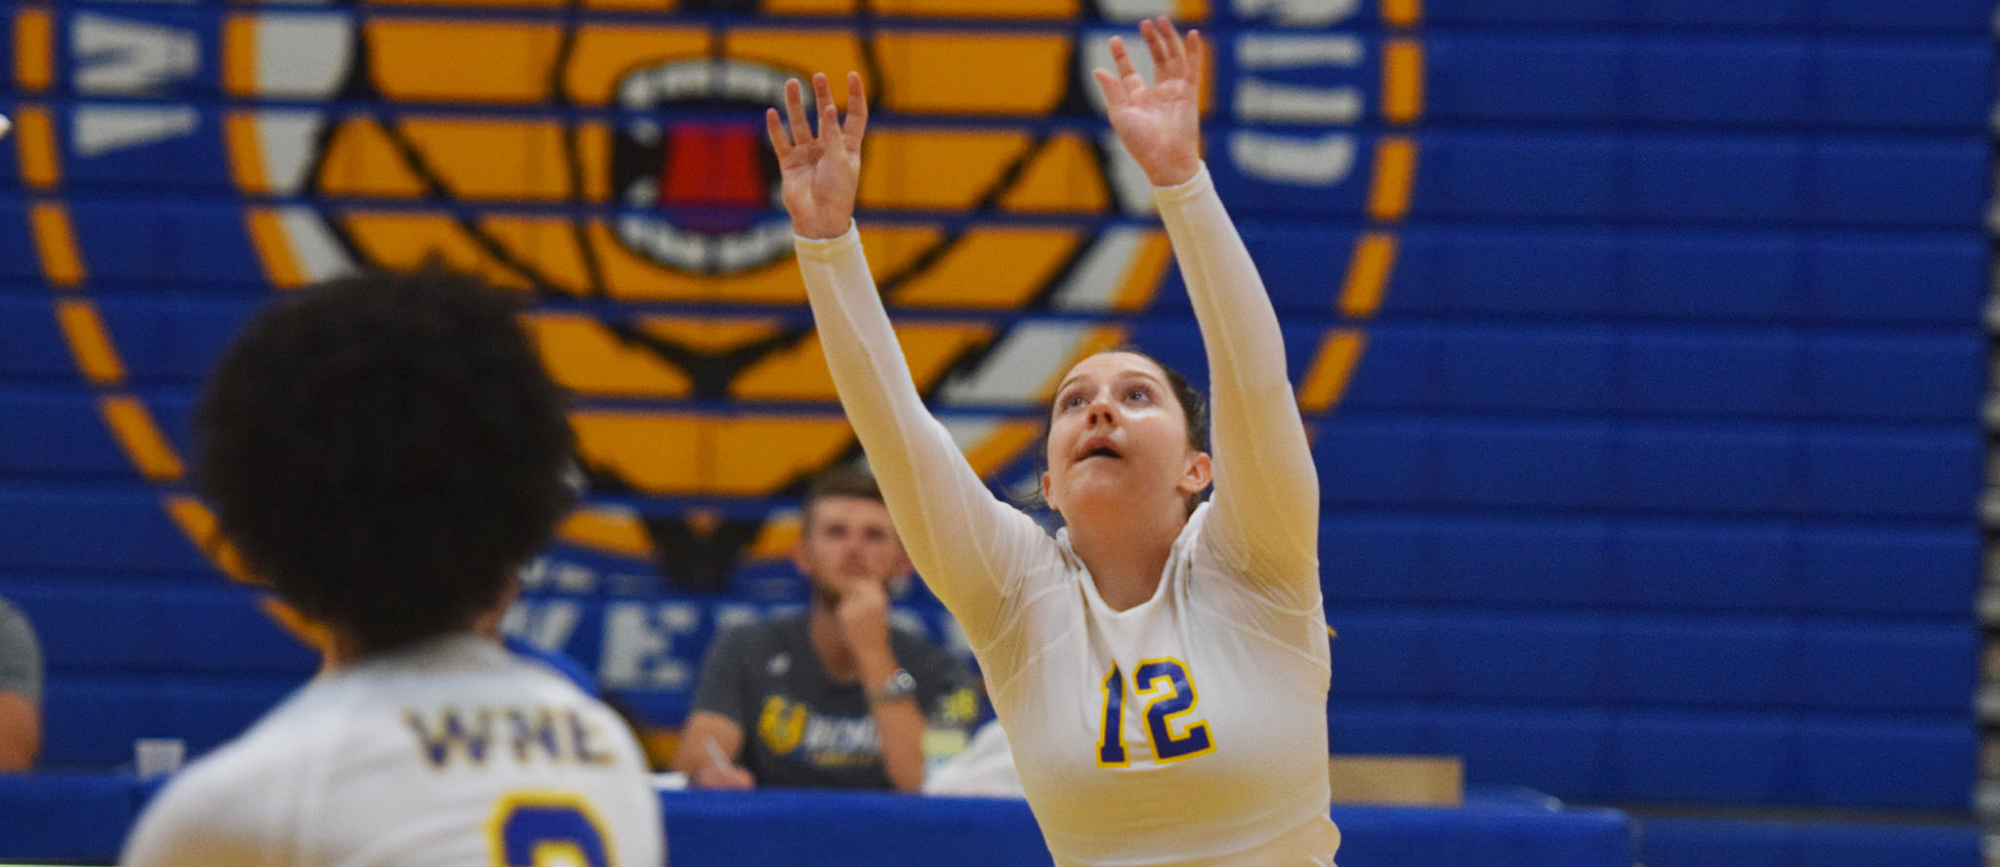 Sophomore setter Jenna McCormack racked up a career-high 45 assists in Western New England's 3-1 win at Elms on Tuesday. (Photo by Rachael Margossian)